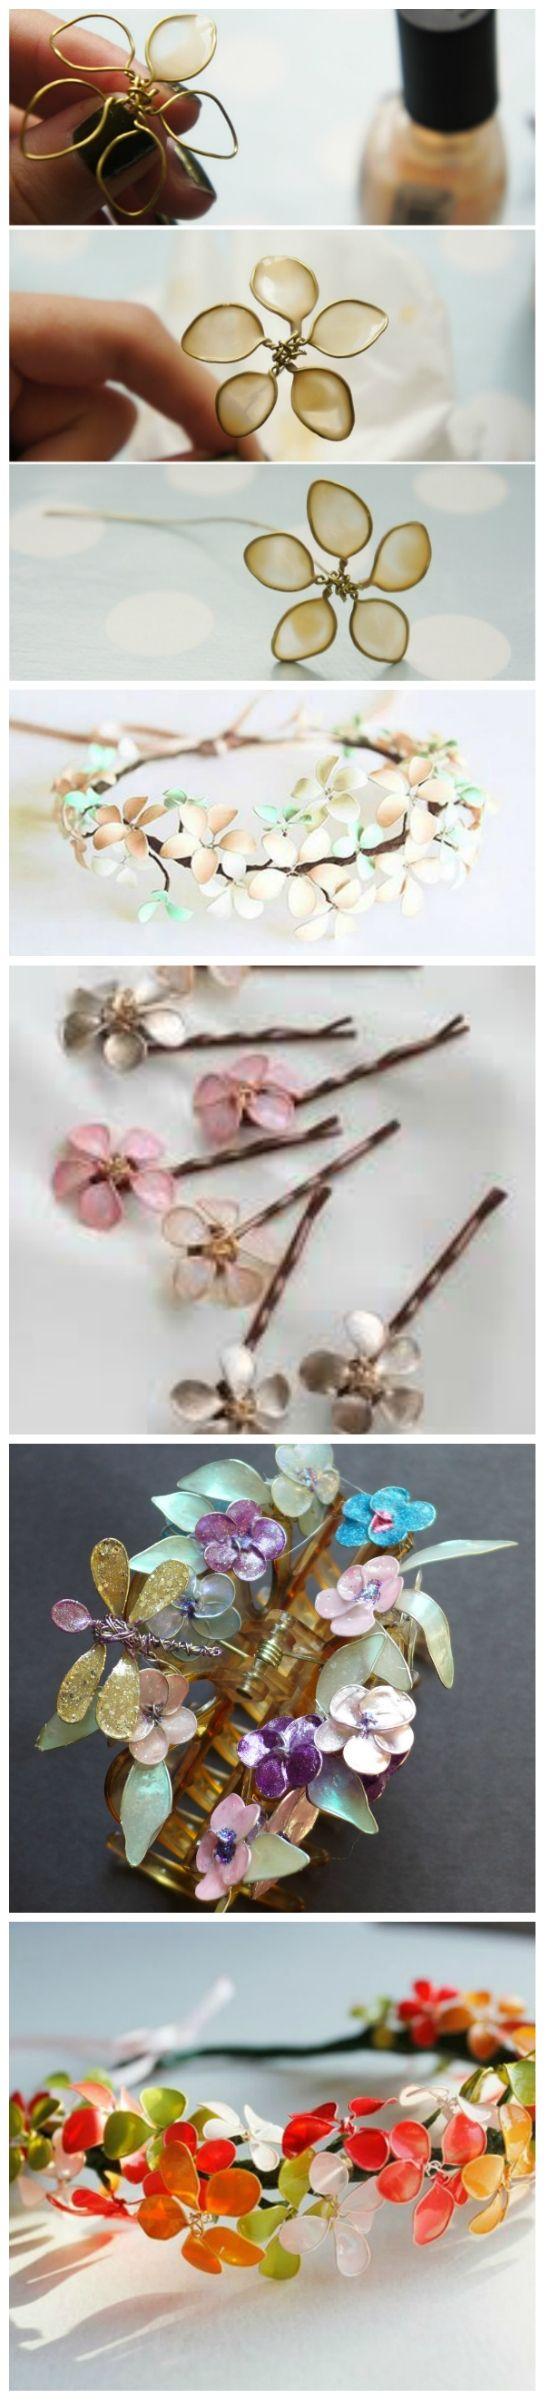 Nail Polish + Wire = Flower Jewelry!